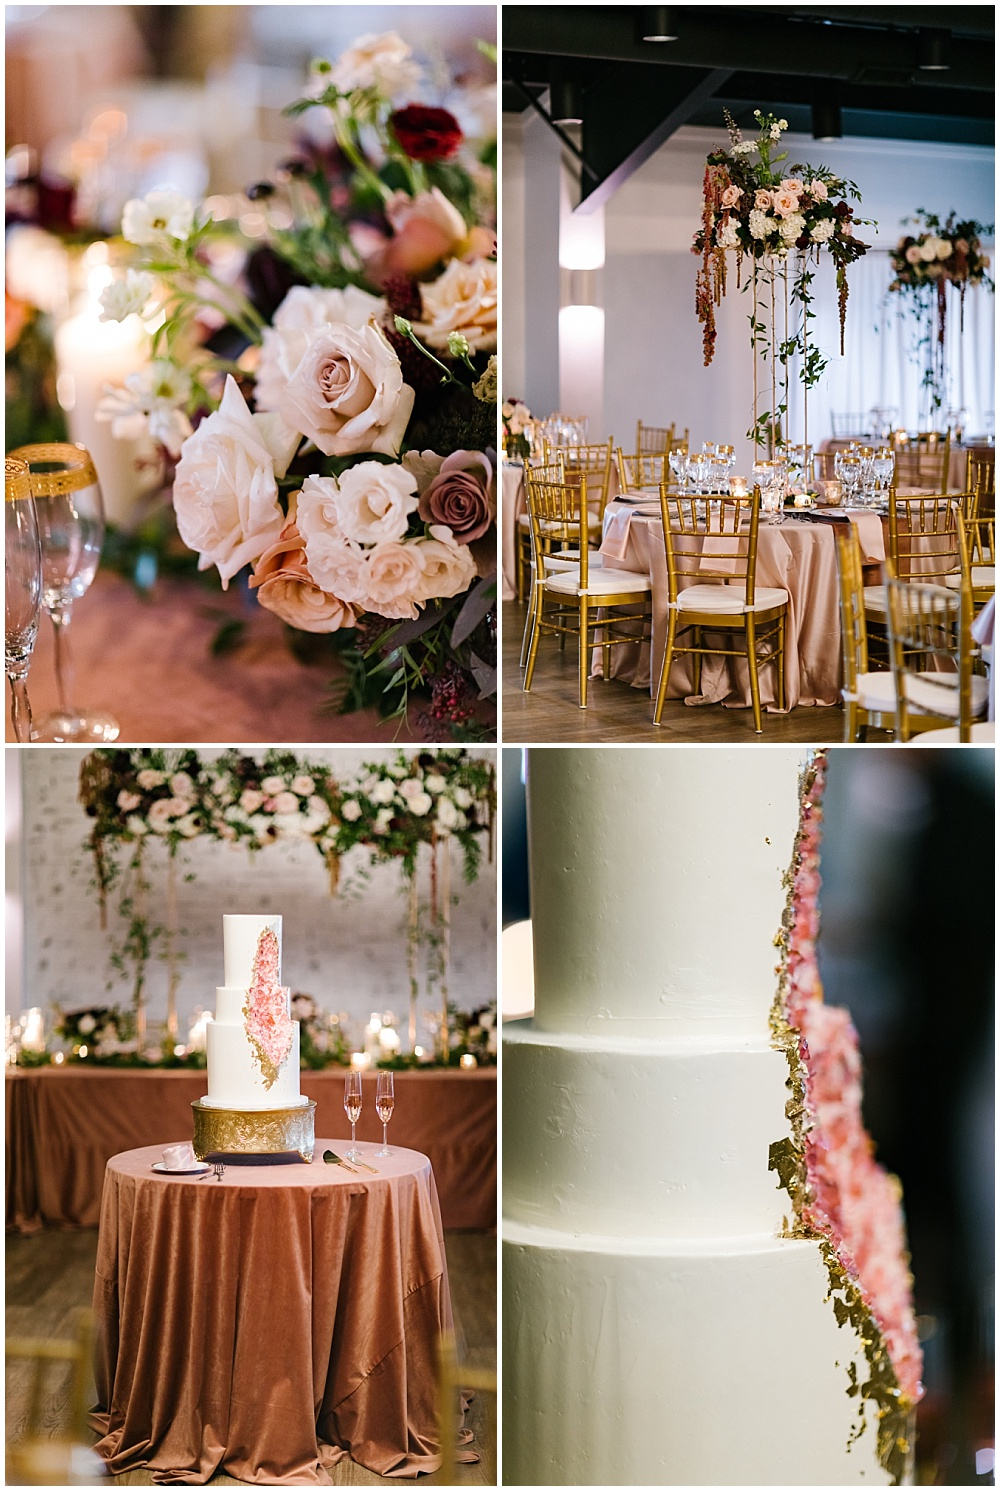 Rose quartz inspired wedding with velvet rose linens, elevated flowers, draped greenery and a rose quartz inspired wedding cake | Daniel's Vineyard wedding with Ivan & Louise + Jessica Dum Wedding Coordination